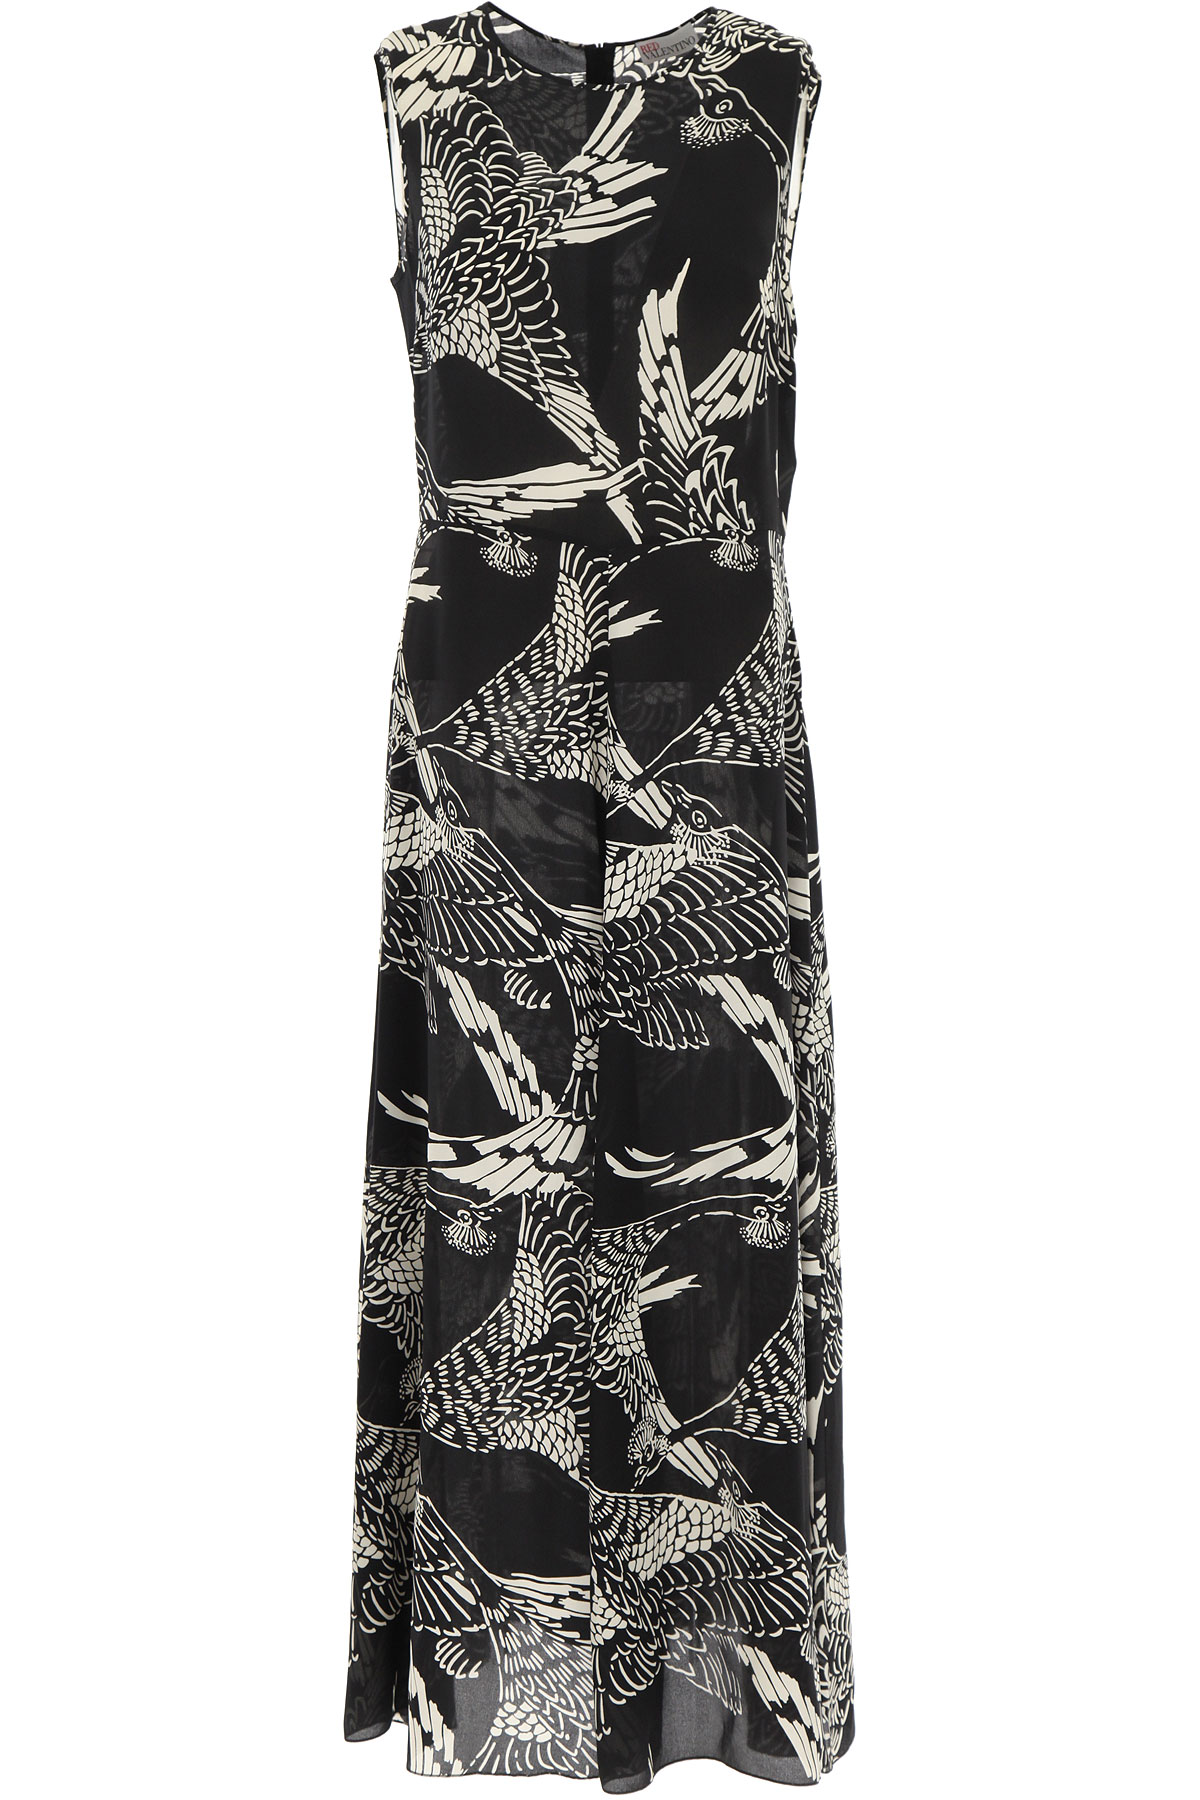 RED Valentino Dress for Women, Evening Cocktail Party On Sale, Black, Silk, 2019, 6 8